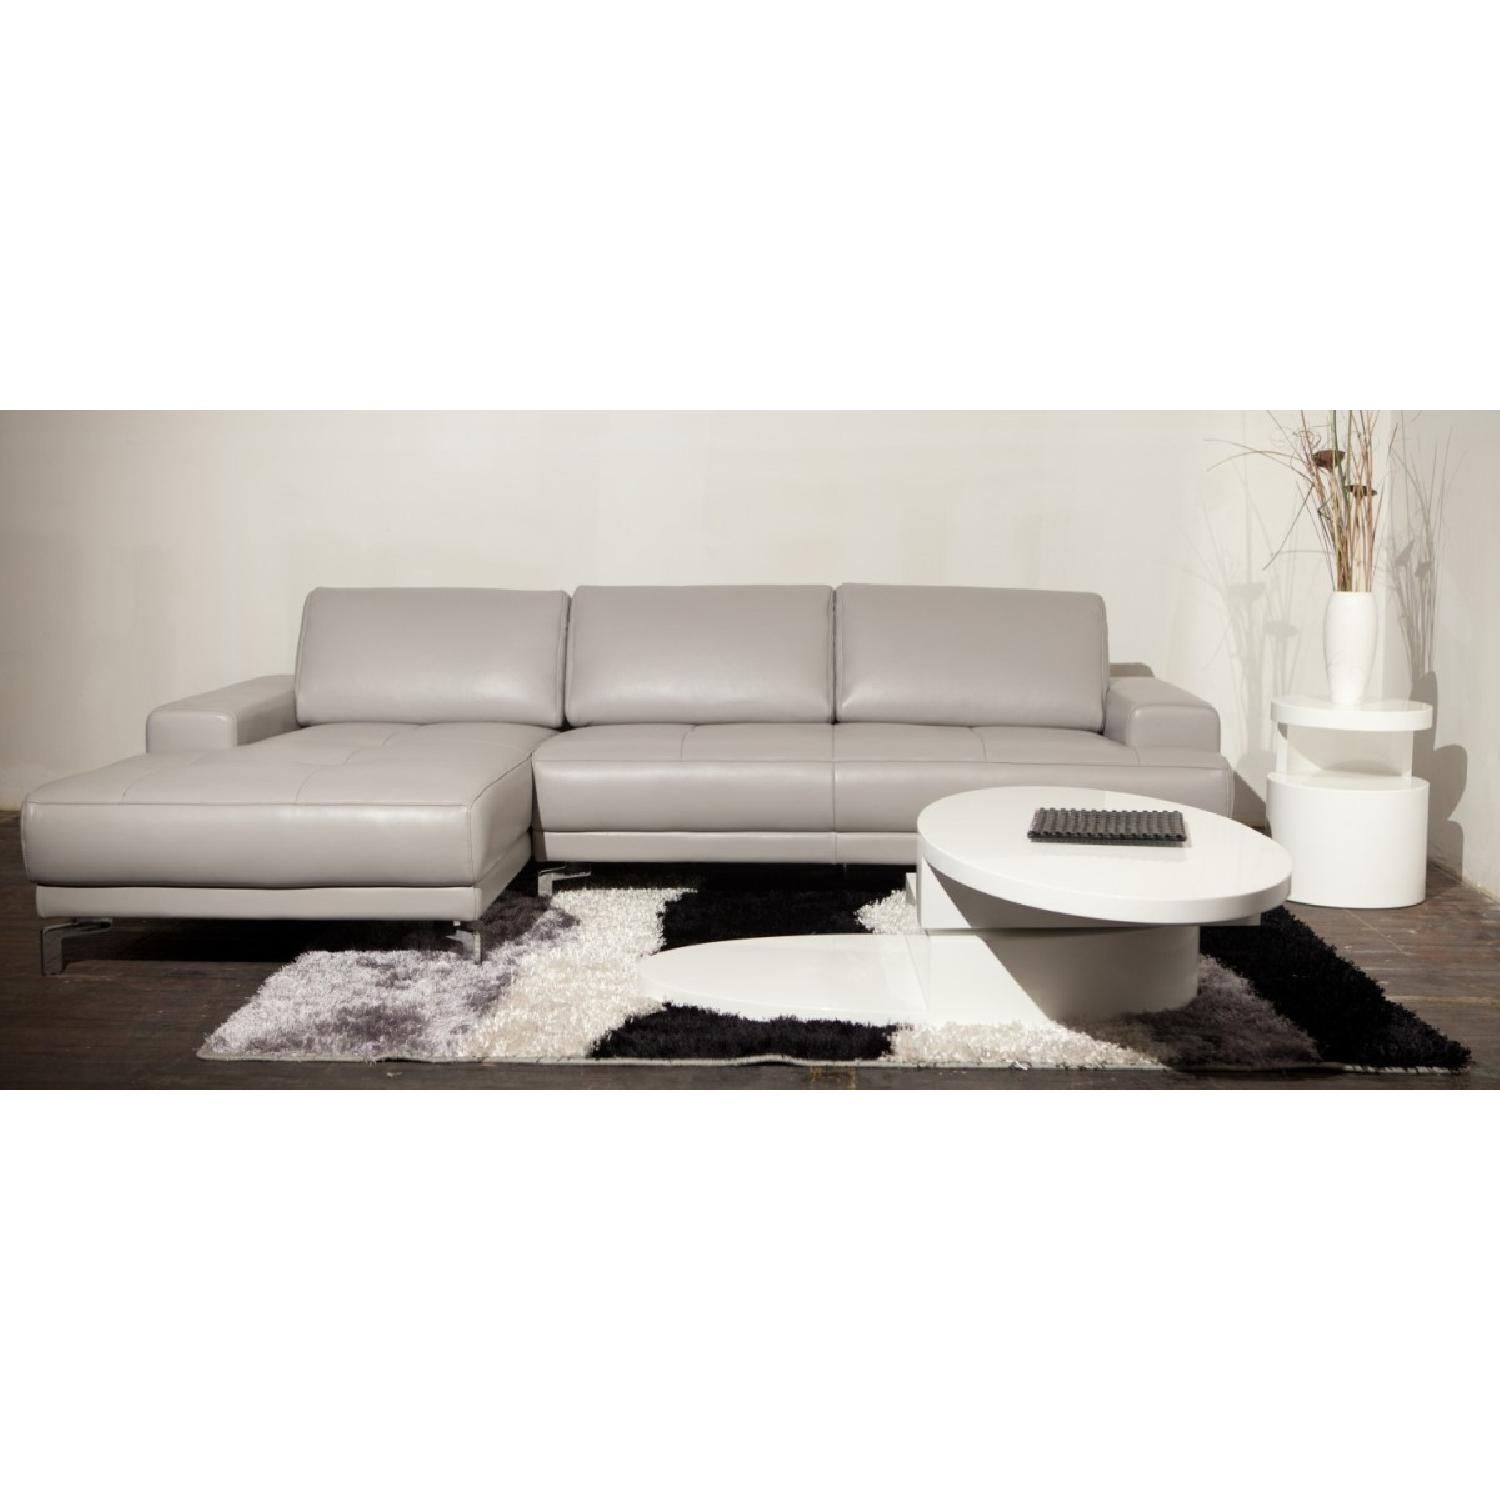 Modern High Gloss White Coffee Table w/ Swivel Oval Top & Sc-1